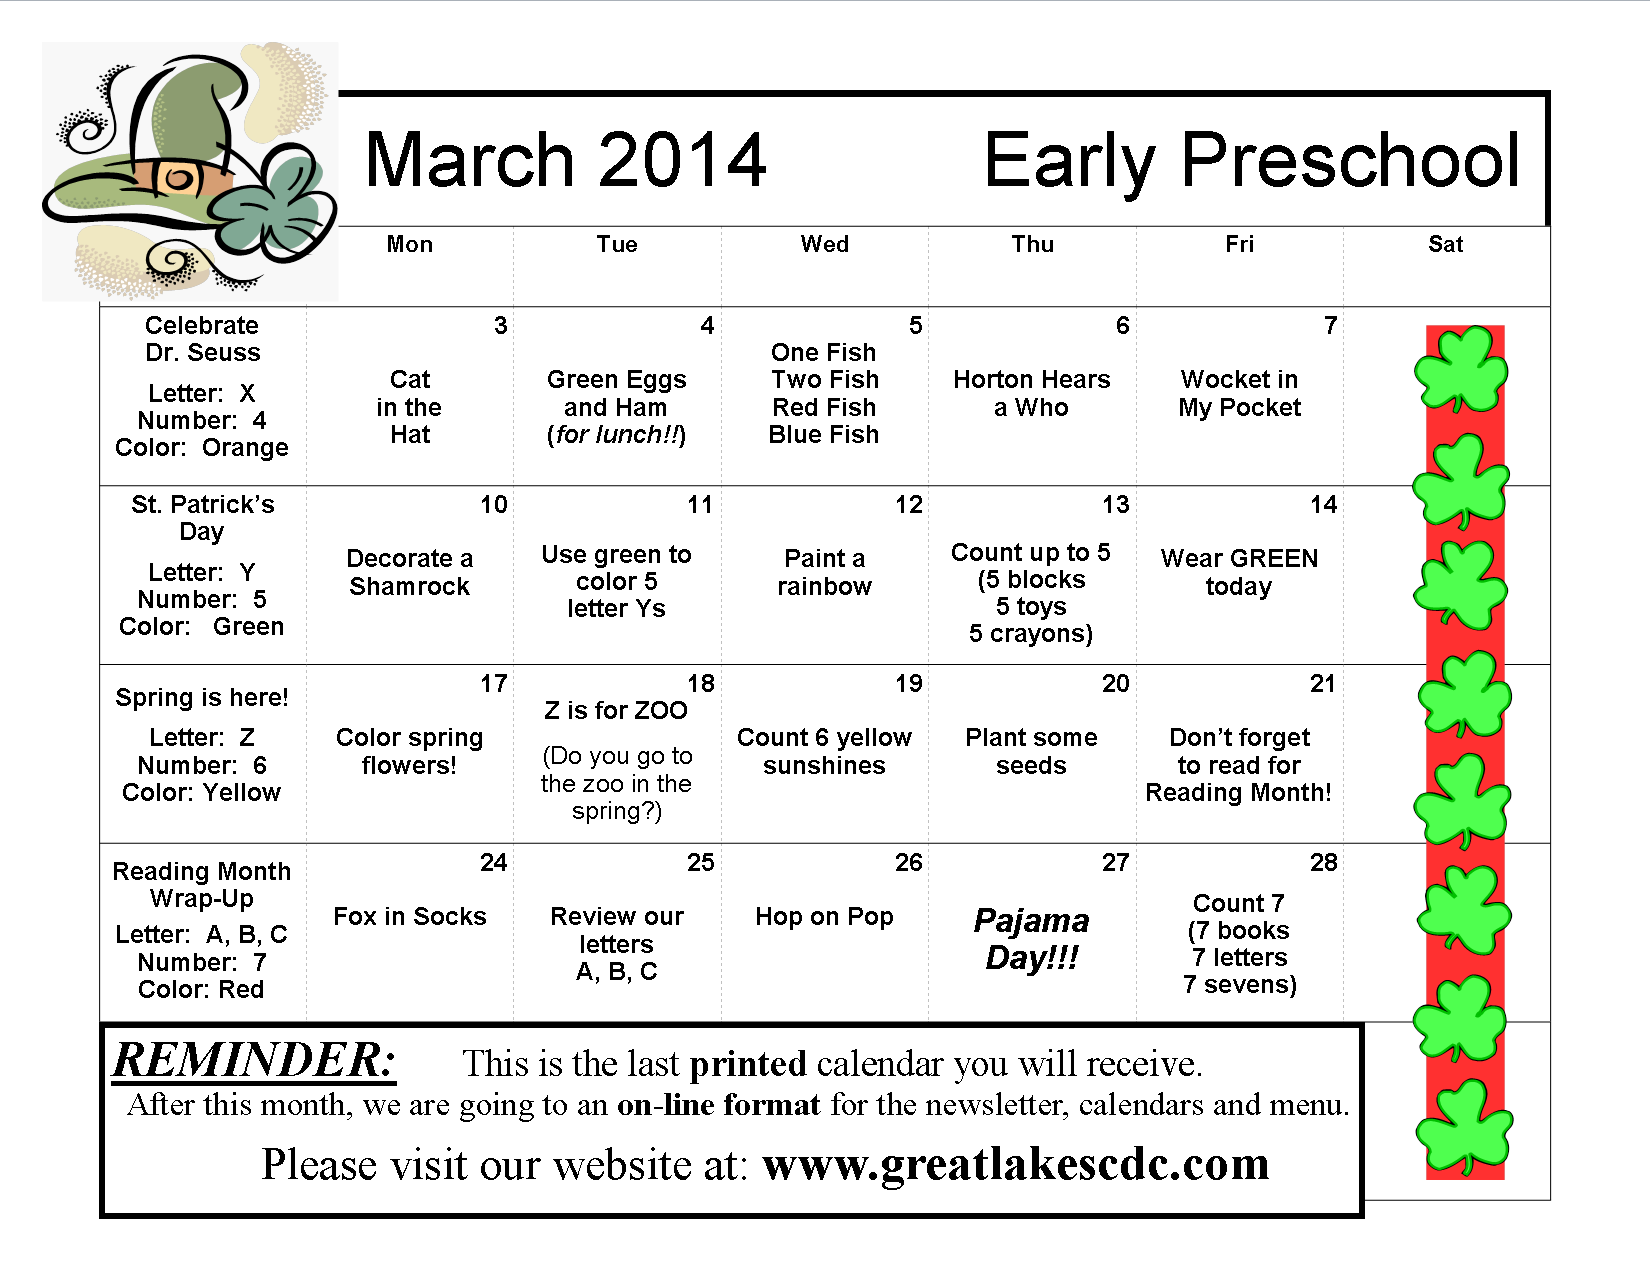 March 2014 Early Preschool